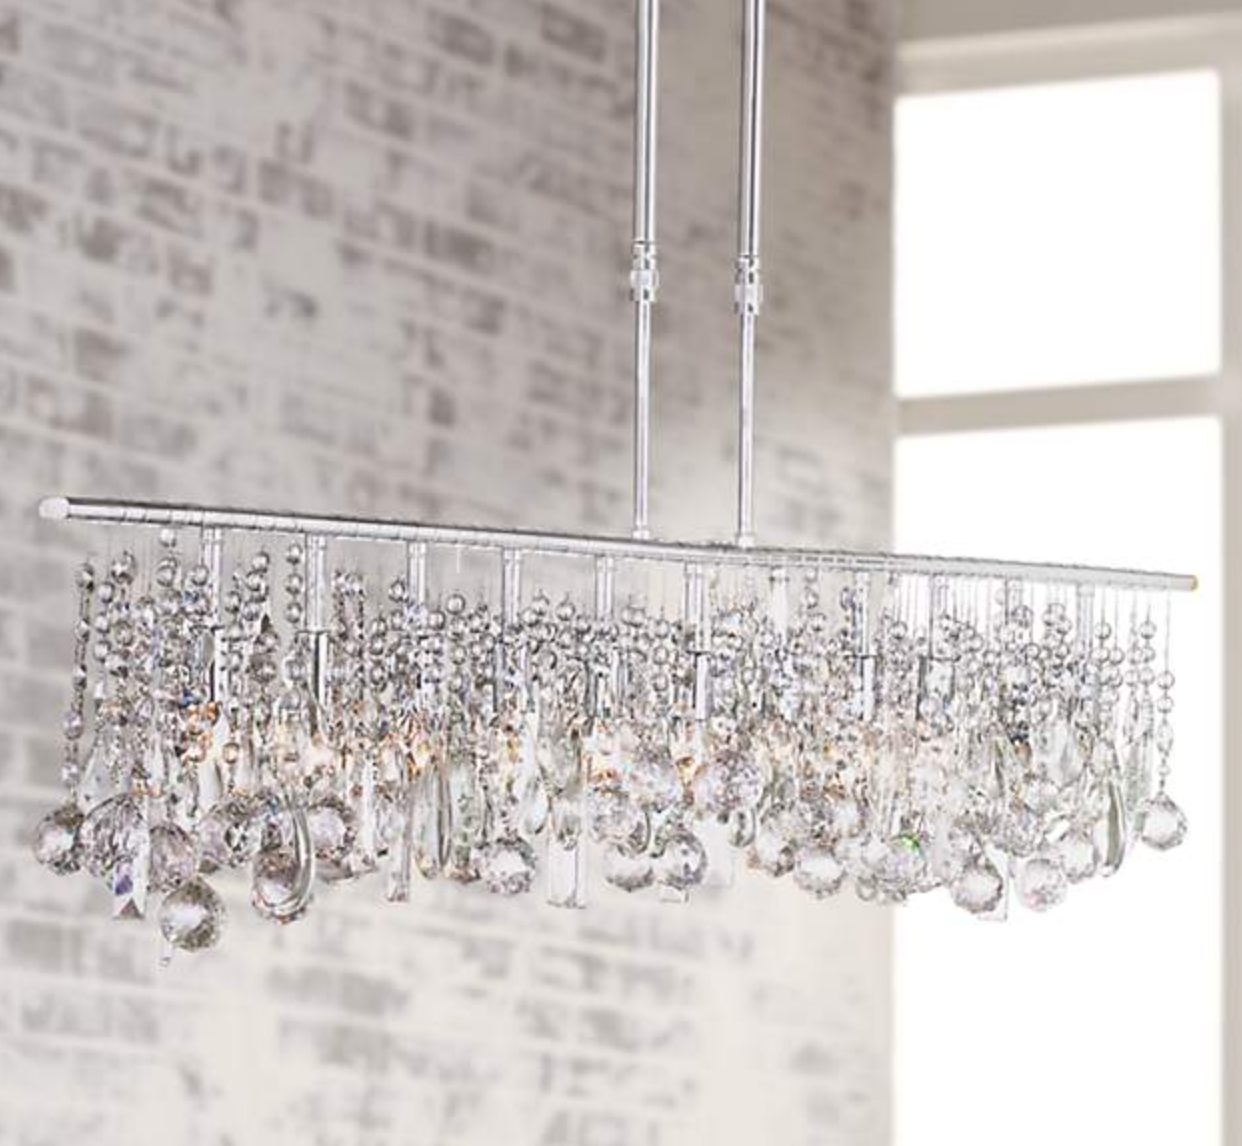 linear crystal chandelier. Design Obsession: Linear Crystal Chandeliers That Look Stunning In A Kitchen Or Dining Room. Chandelier